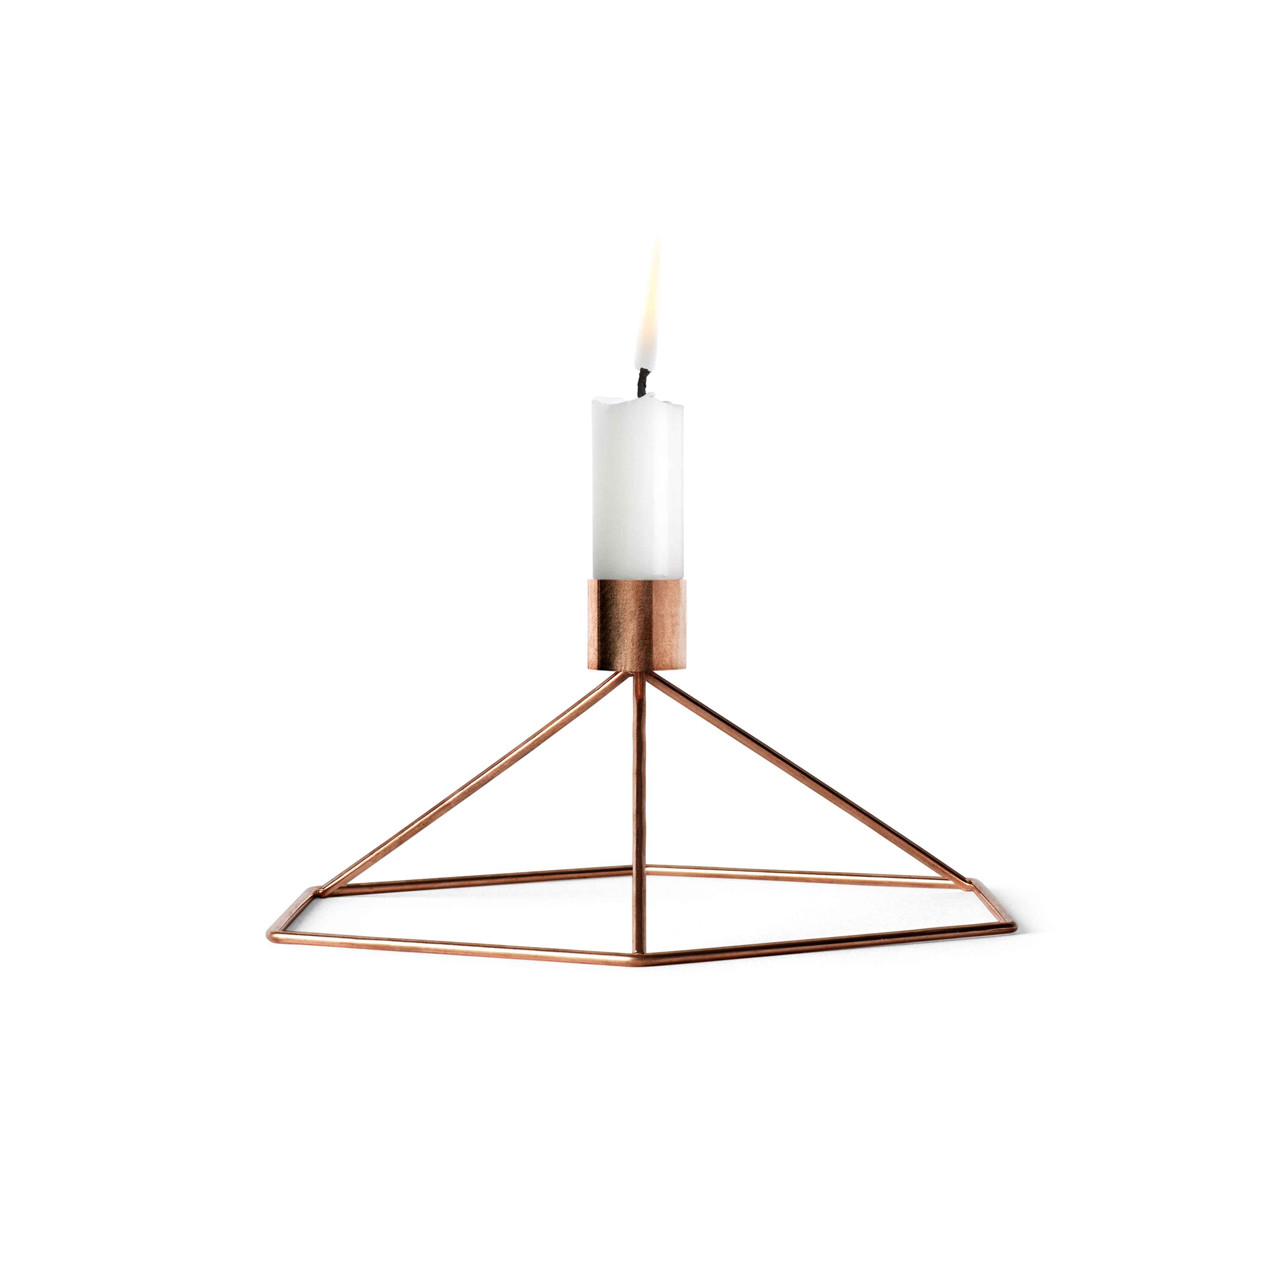 Menu POV Candleholder Table Copper – pris 349.00